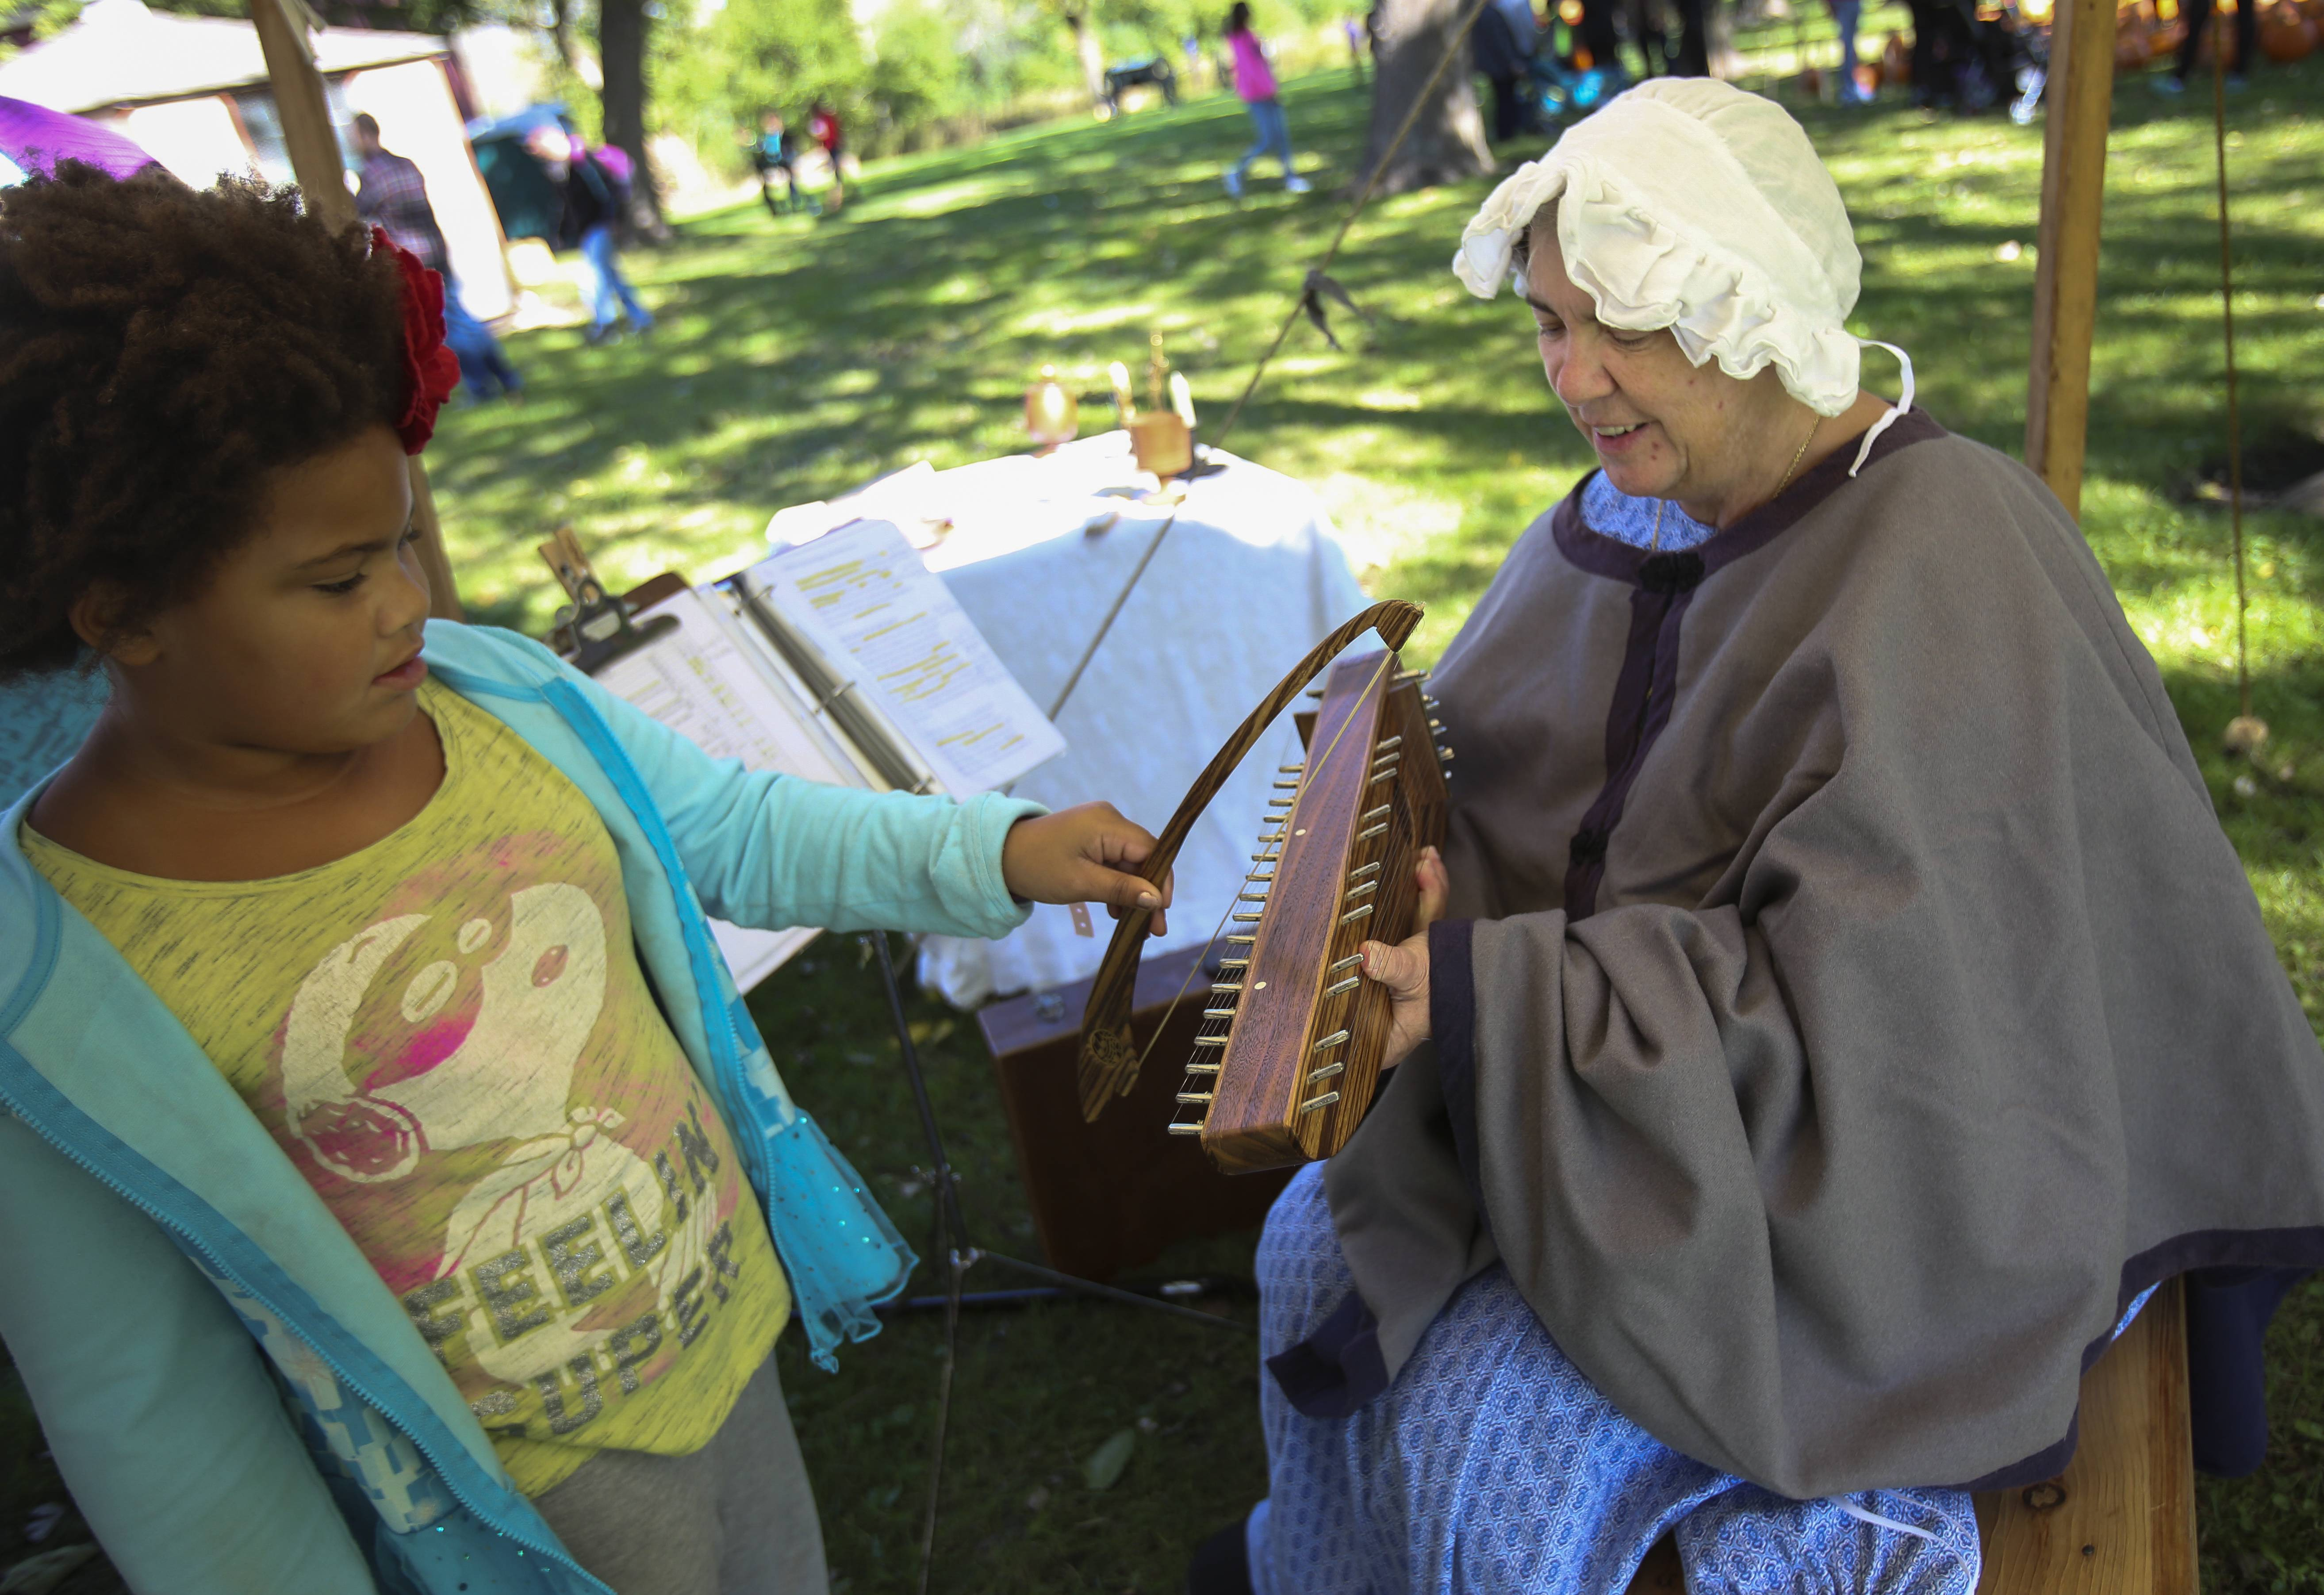 Visitors can step back in time Saturday when Bensenville celebrates Heritage Day at Fischer Farm.